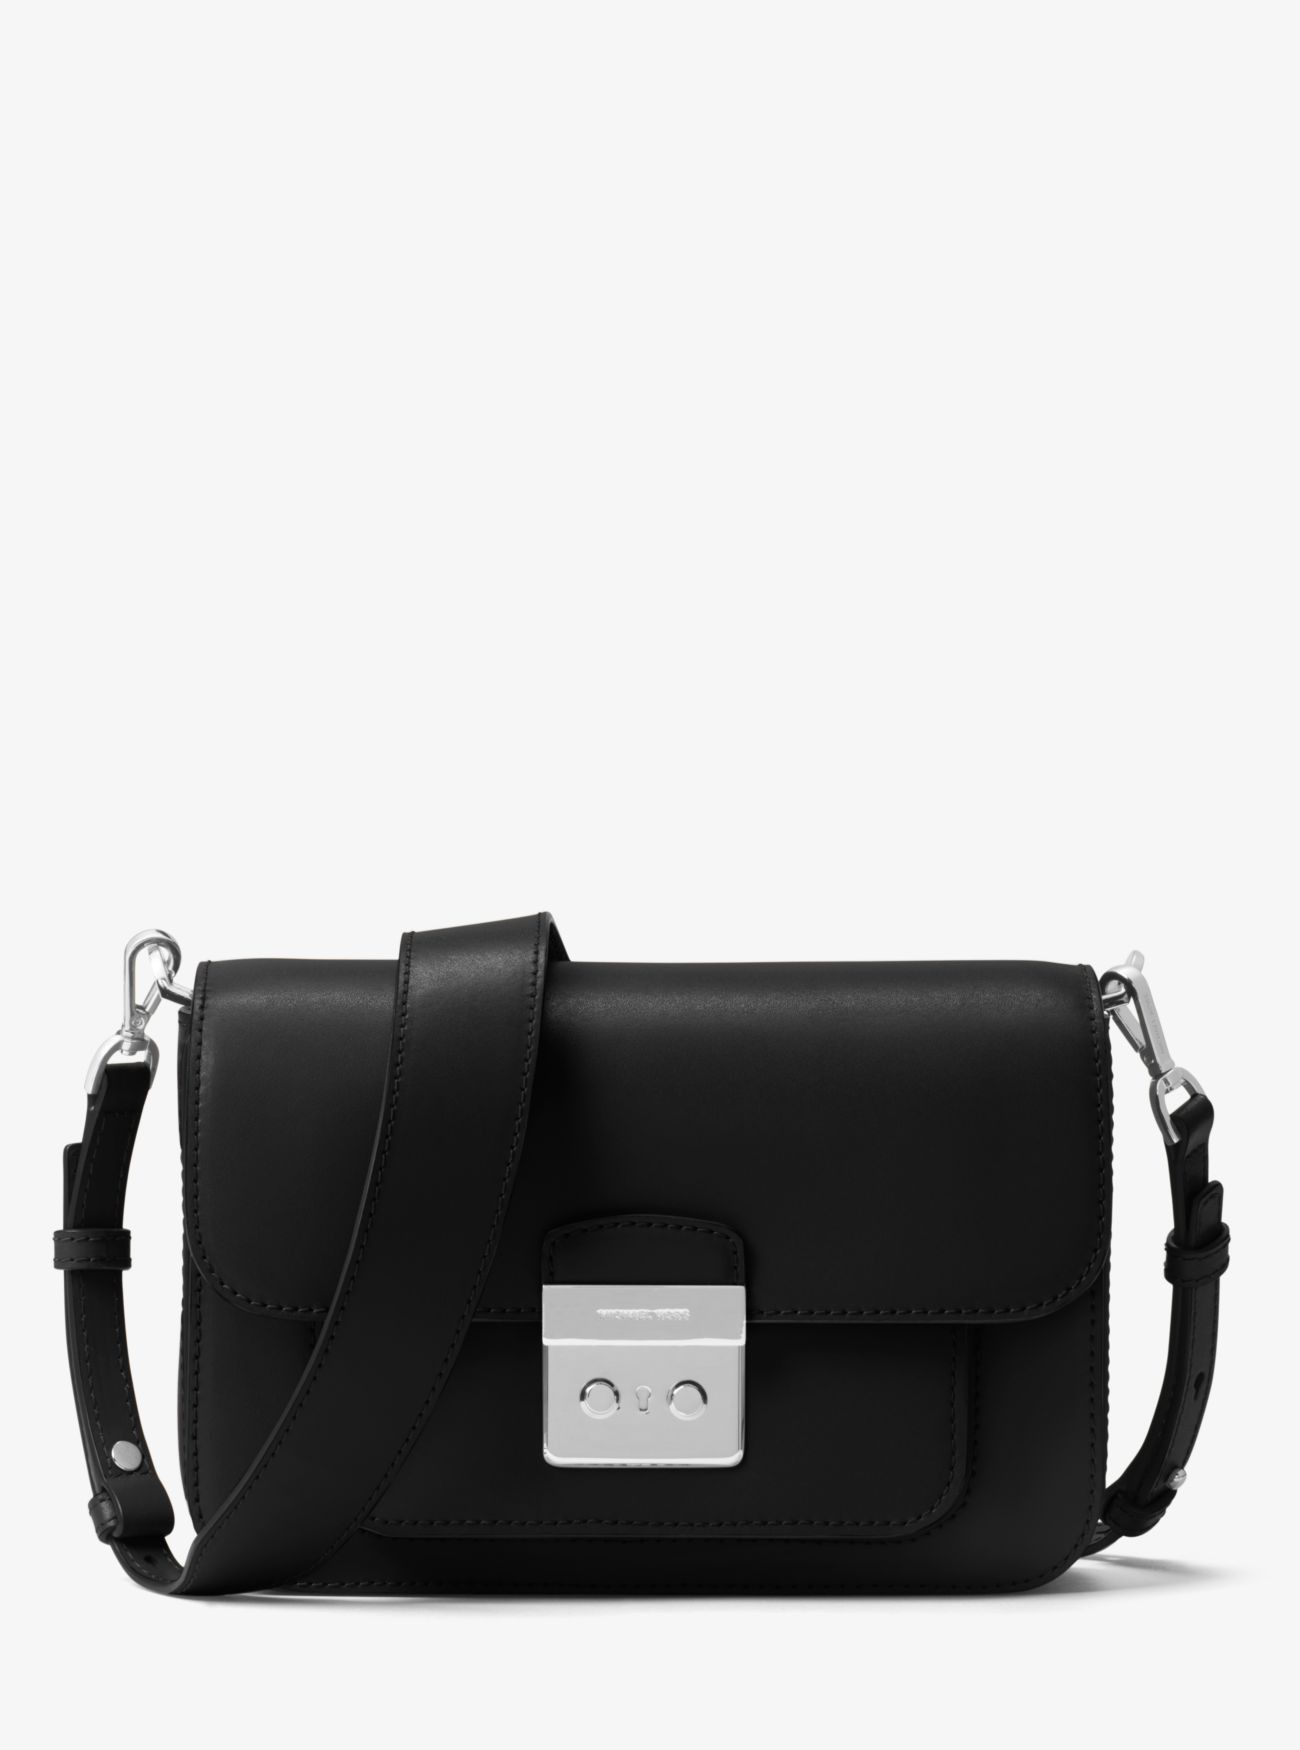 a1c777cd4d03 Price Michael Kors Black Sloan Editor Leather Shoulder Bag Cheap ...